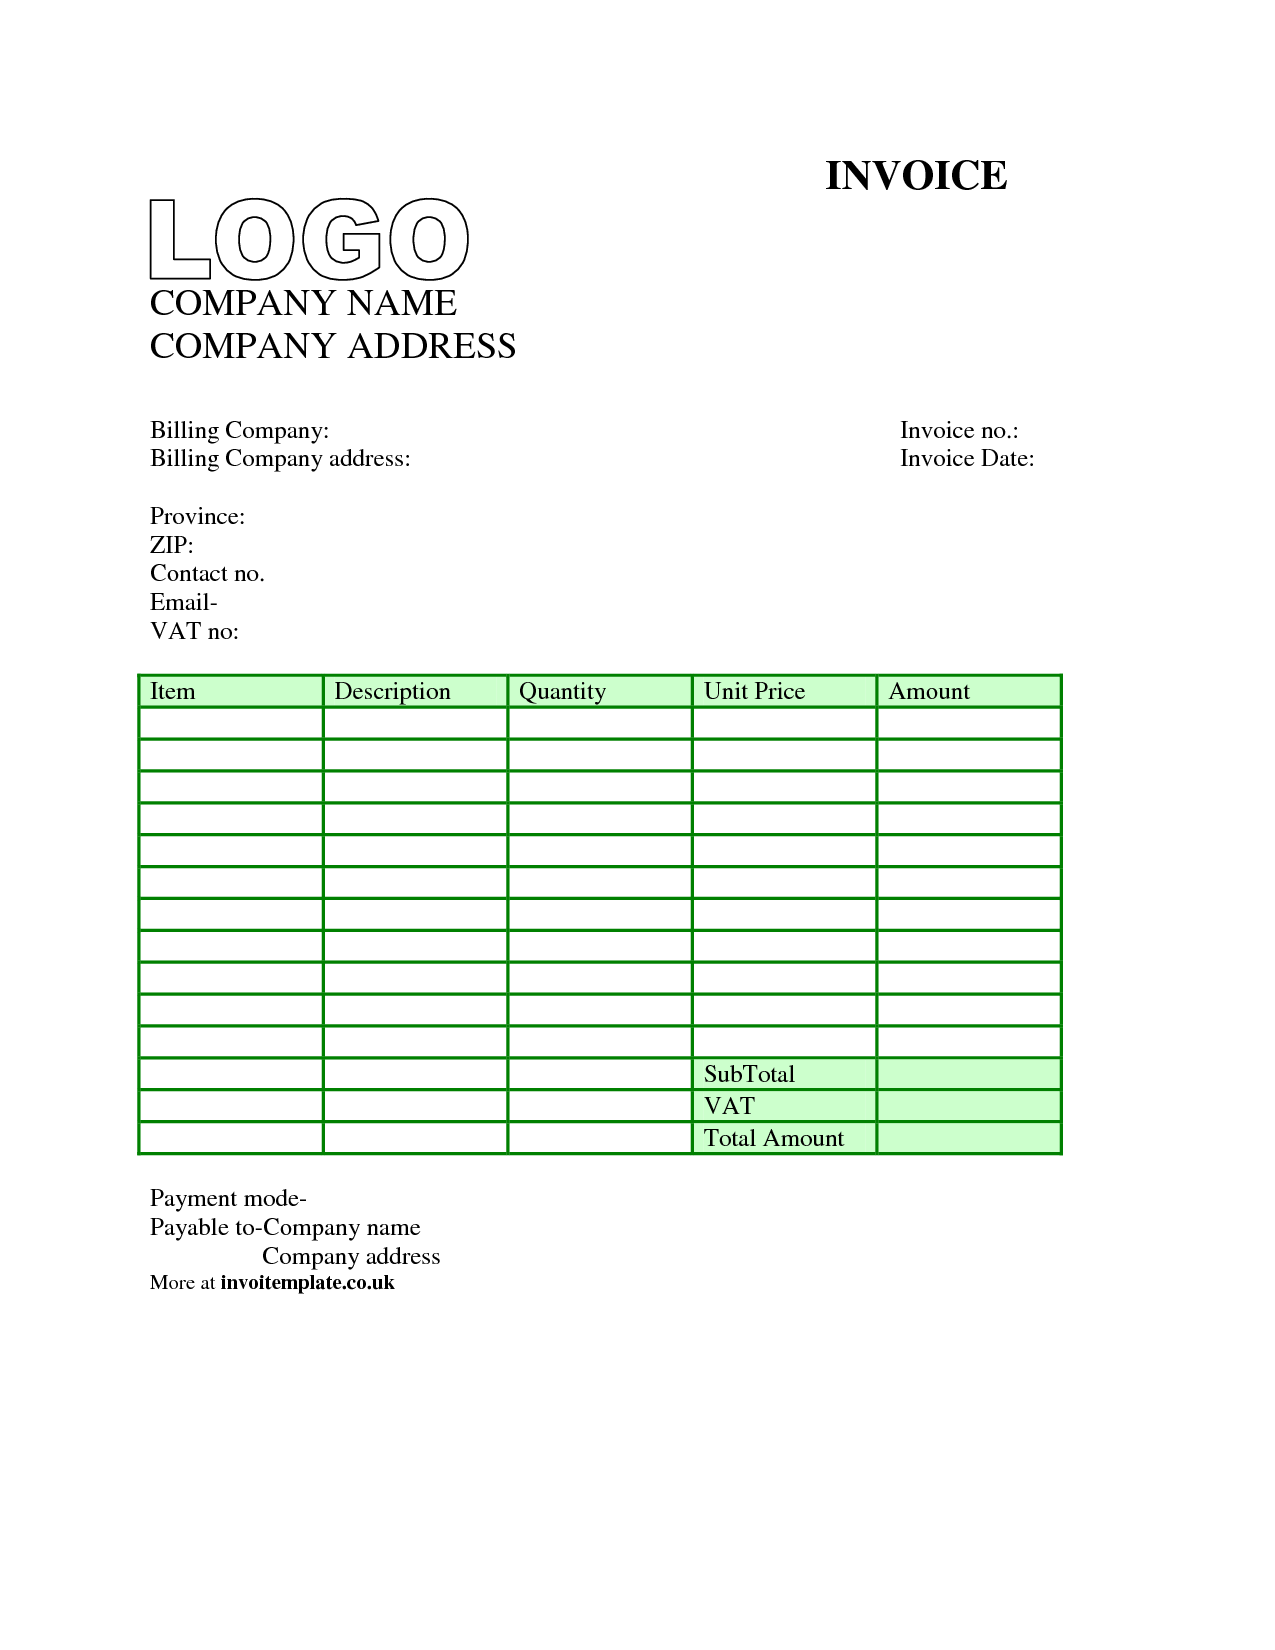 Excel Based Consulting Invoice Template Excel Invoice Invoice Template Uk Word Invoice Example